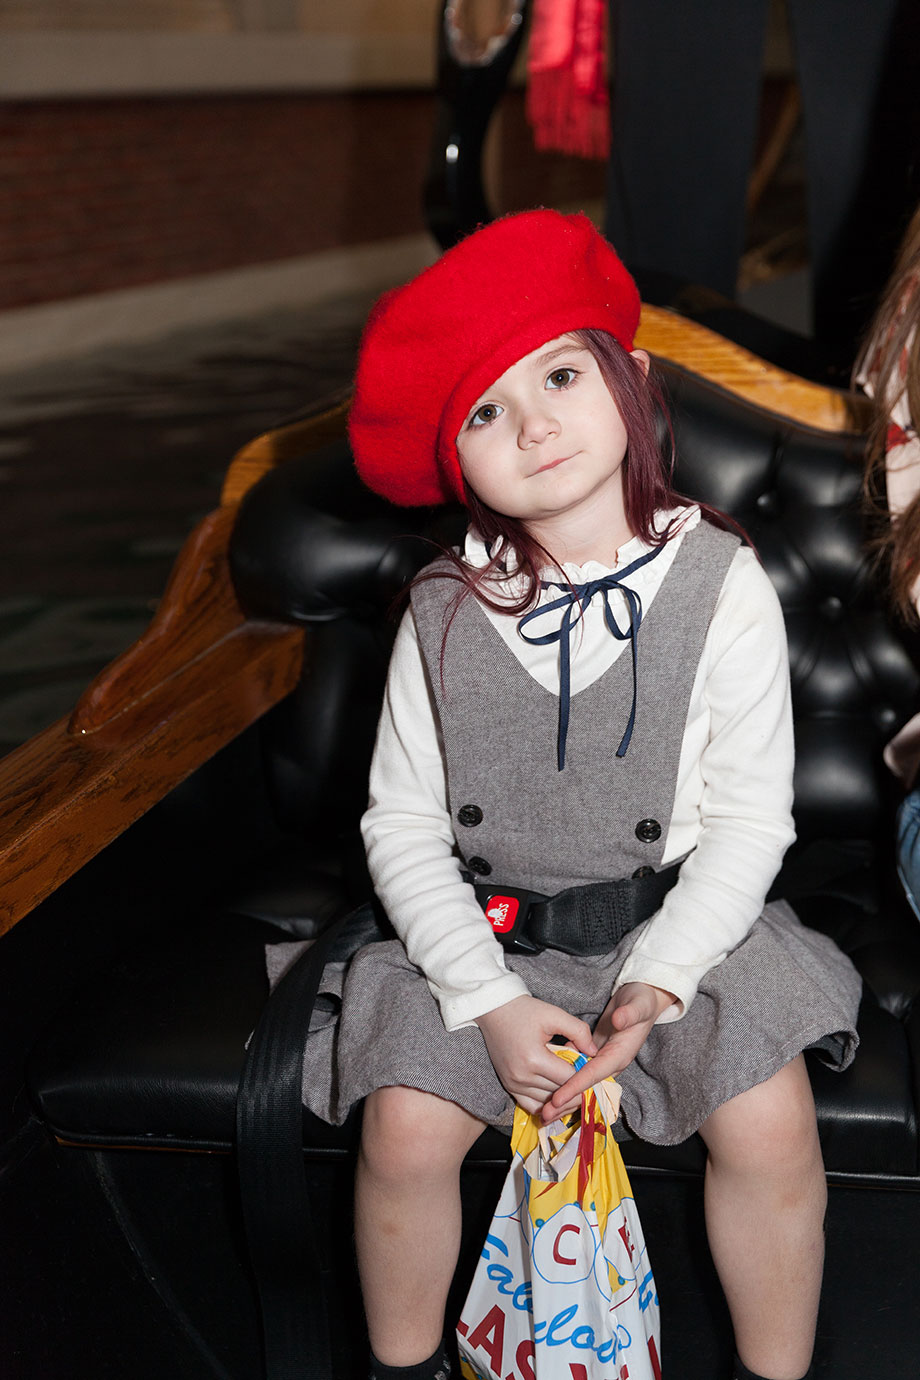 Zelda of Glitter and Bubbles sits in a gondola wearing a red hat and a checked dress.